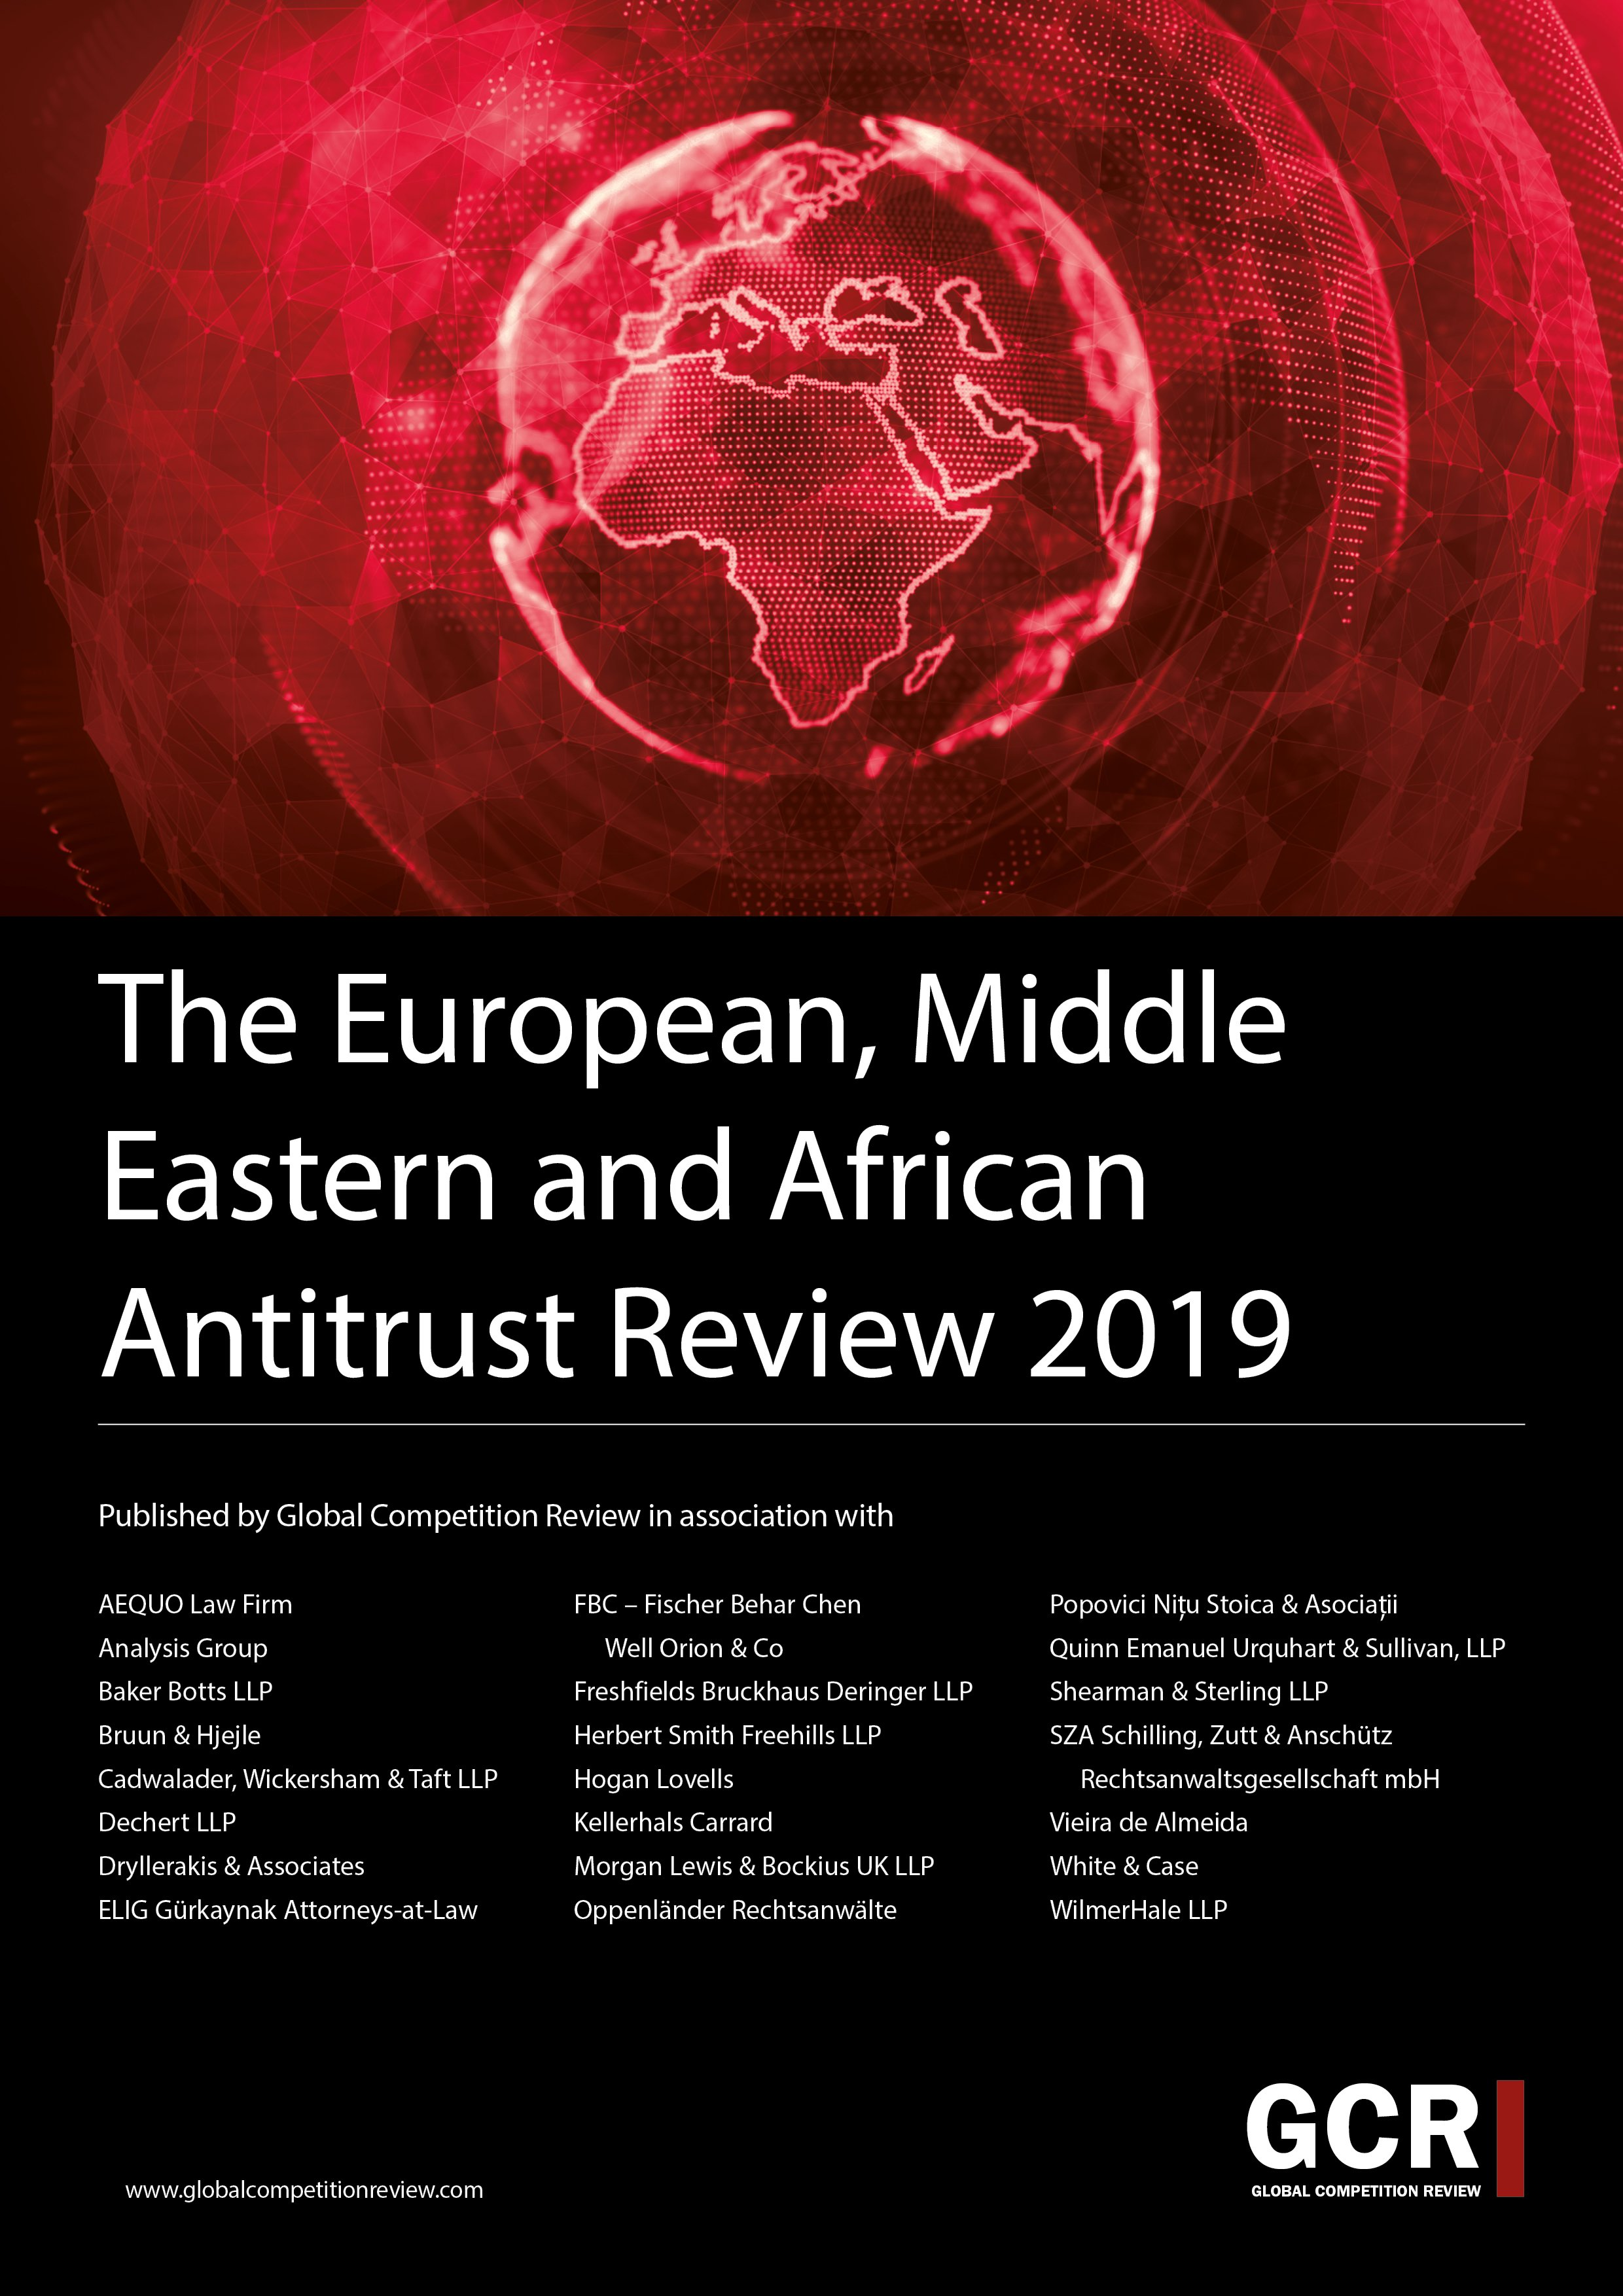 The European, Middle Eastern and African Antitrust Review 2019